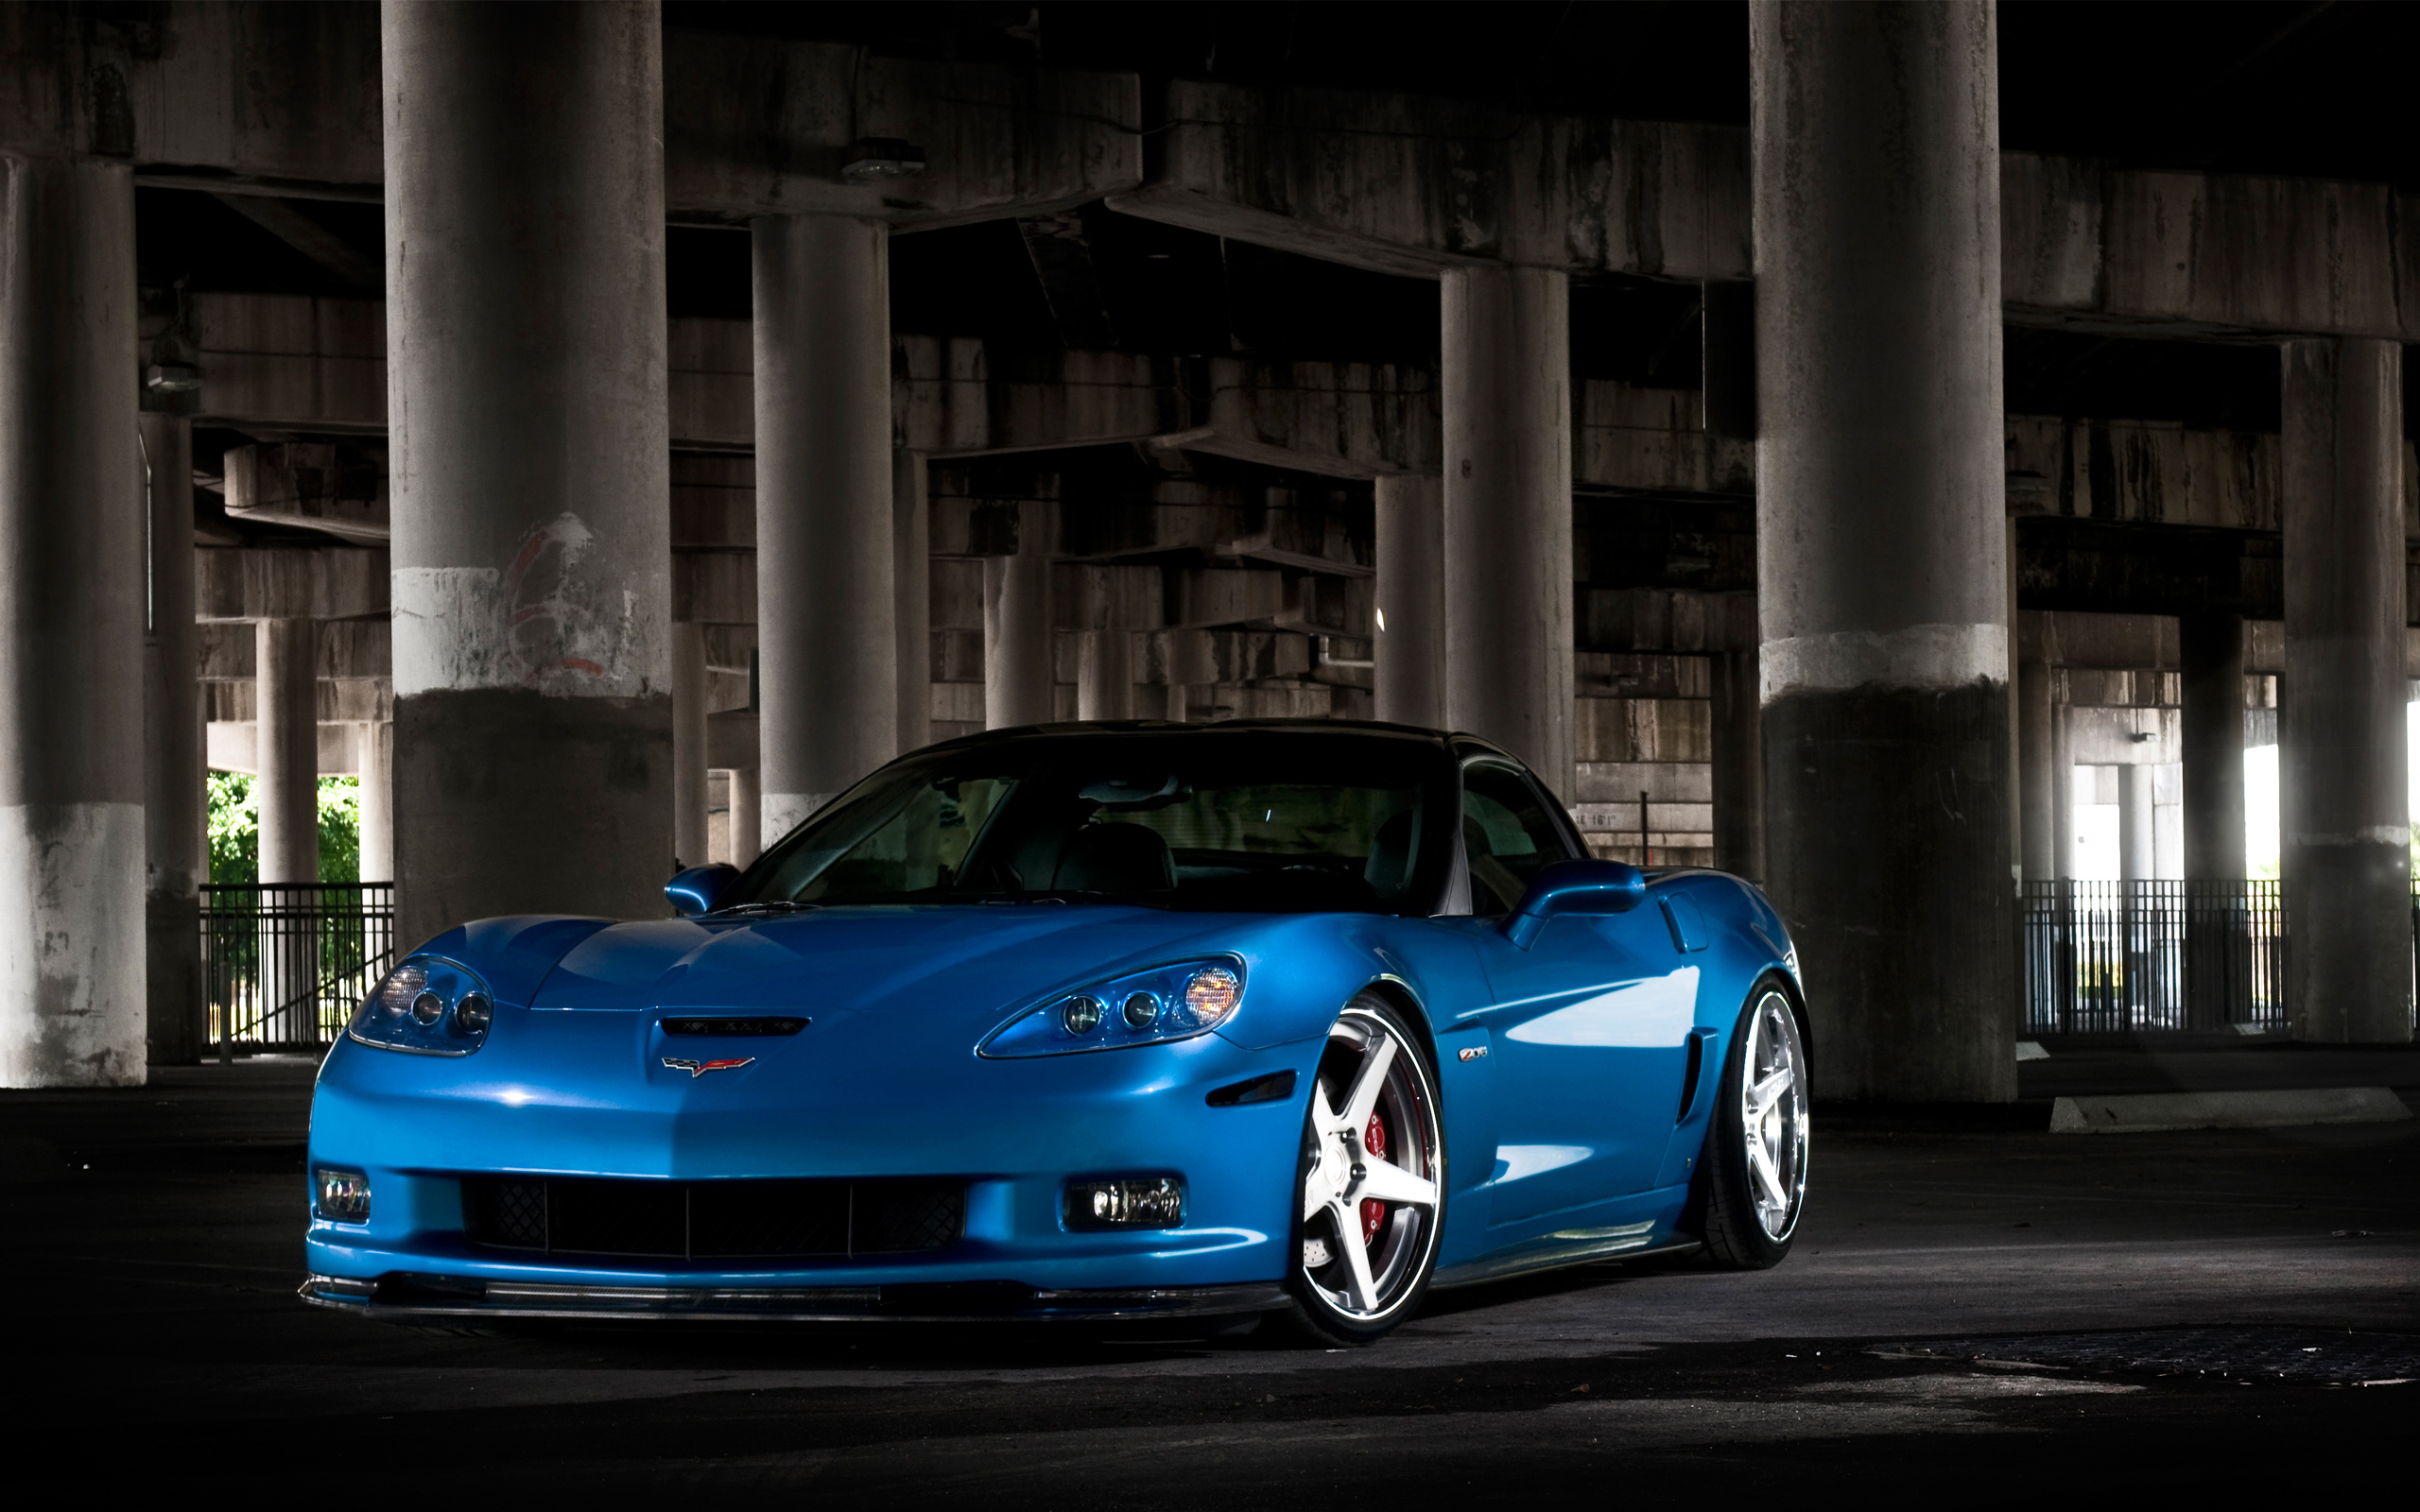 Corvette Mallett Super Car Wallpapers | HD Wallpapers